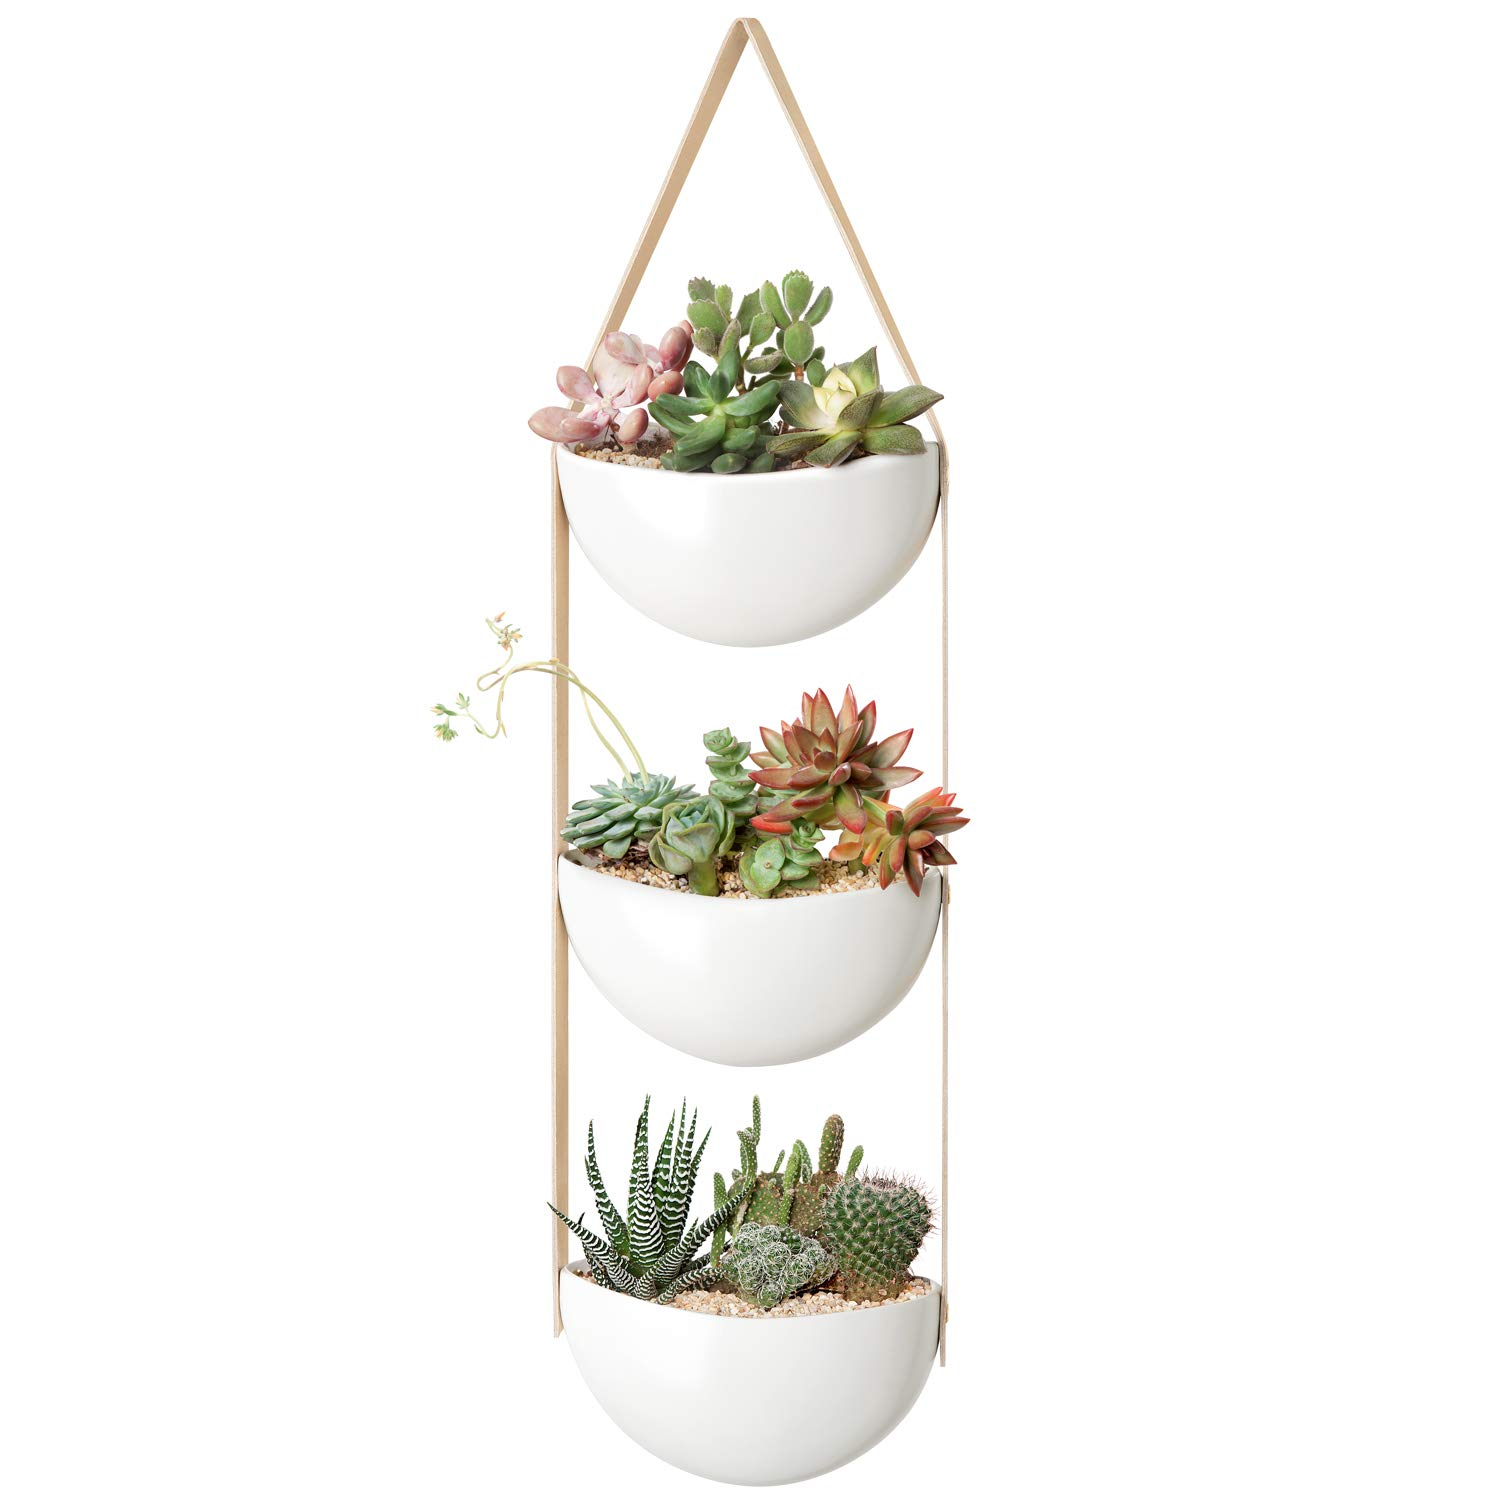 Mkono Ceramic Wall Hanging Planter 3 Tier Decorative Plant Flower Pots with Leather Strap Indoor Modern Vertical Garden for Succulent Herb Air Plant Live or Faux Plants Home Decor, White